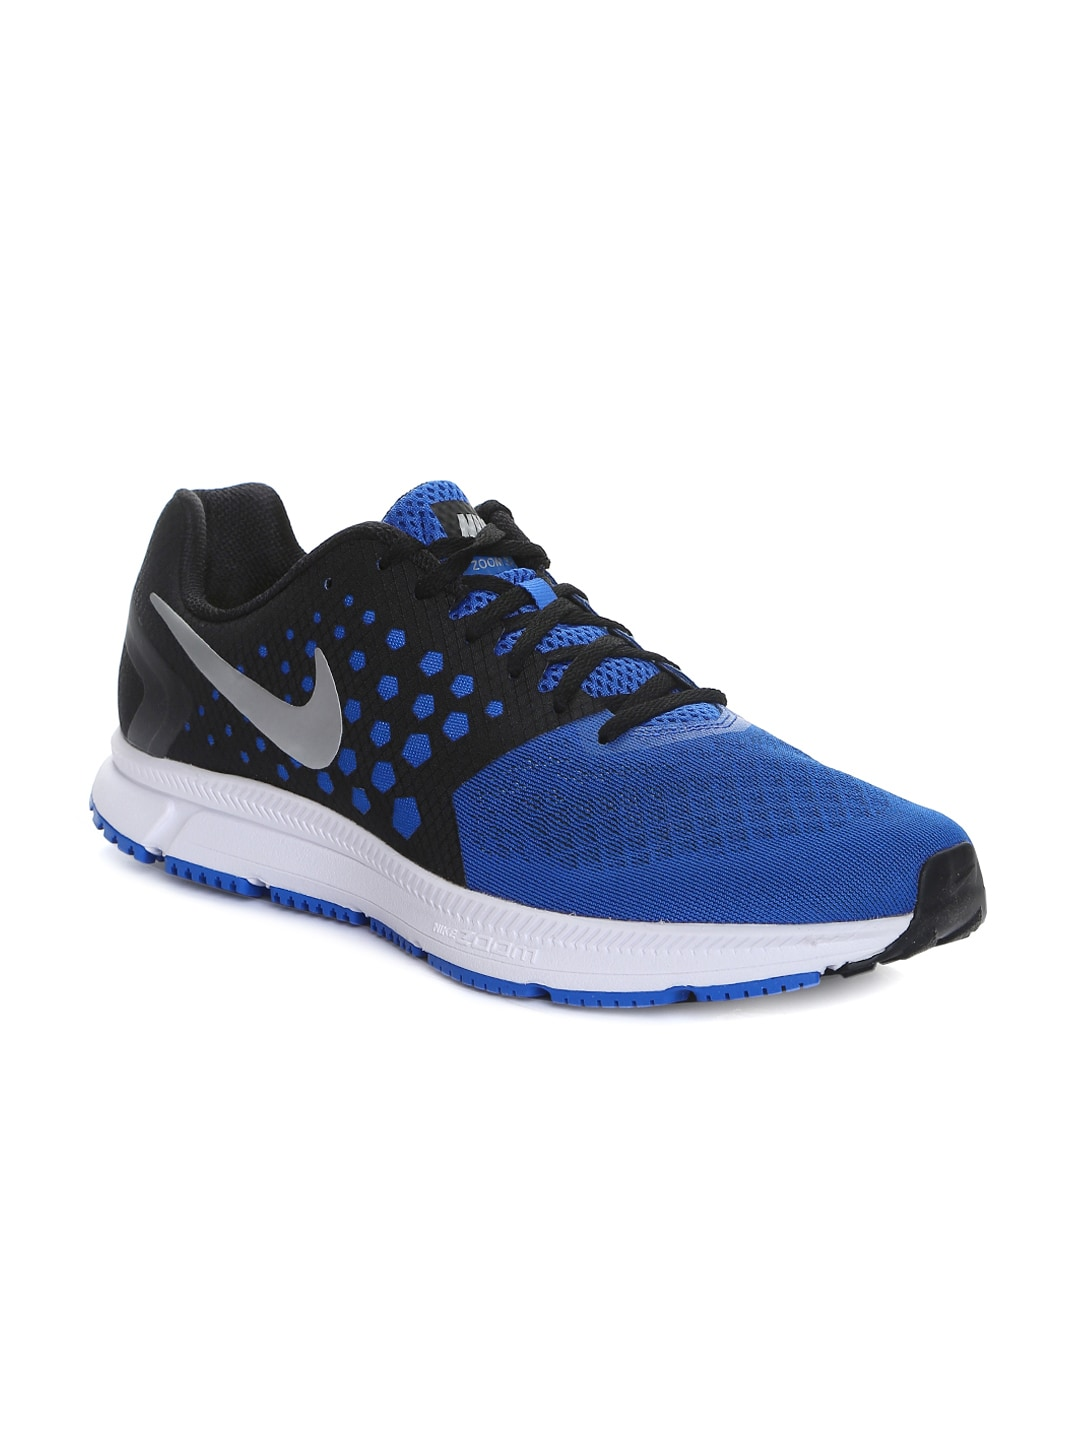 sports shoes 6319f d604d Sports Shoes Nike Tracksuits Skirts - Buy Sports Shoes Nike Tracksuits  Skirts online in India